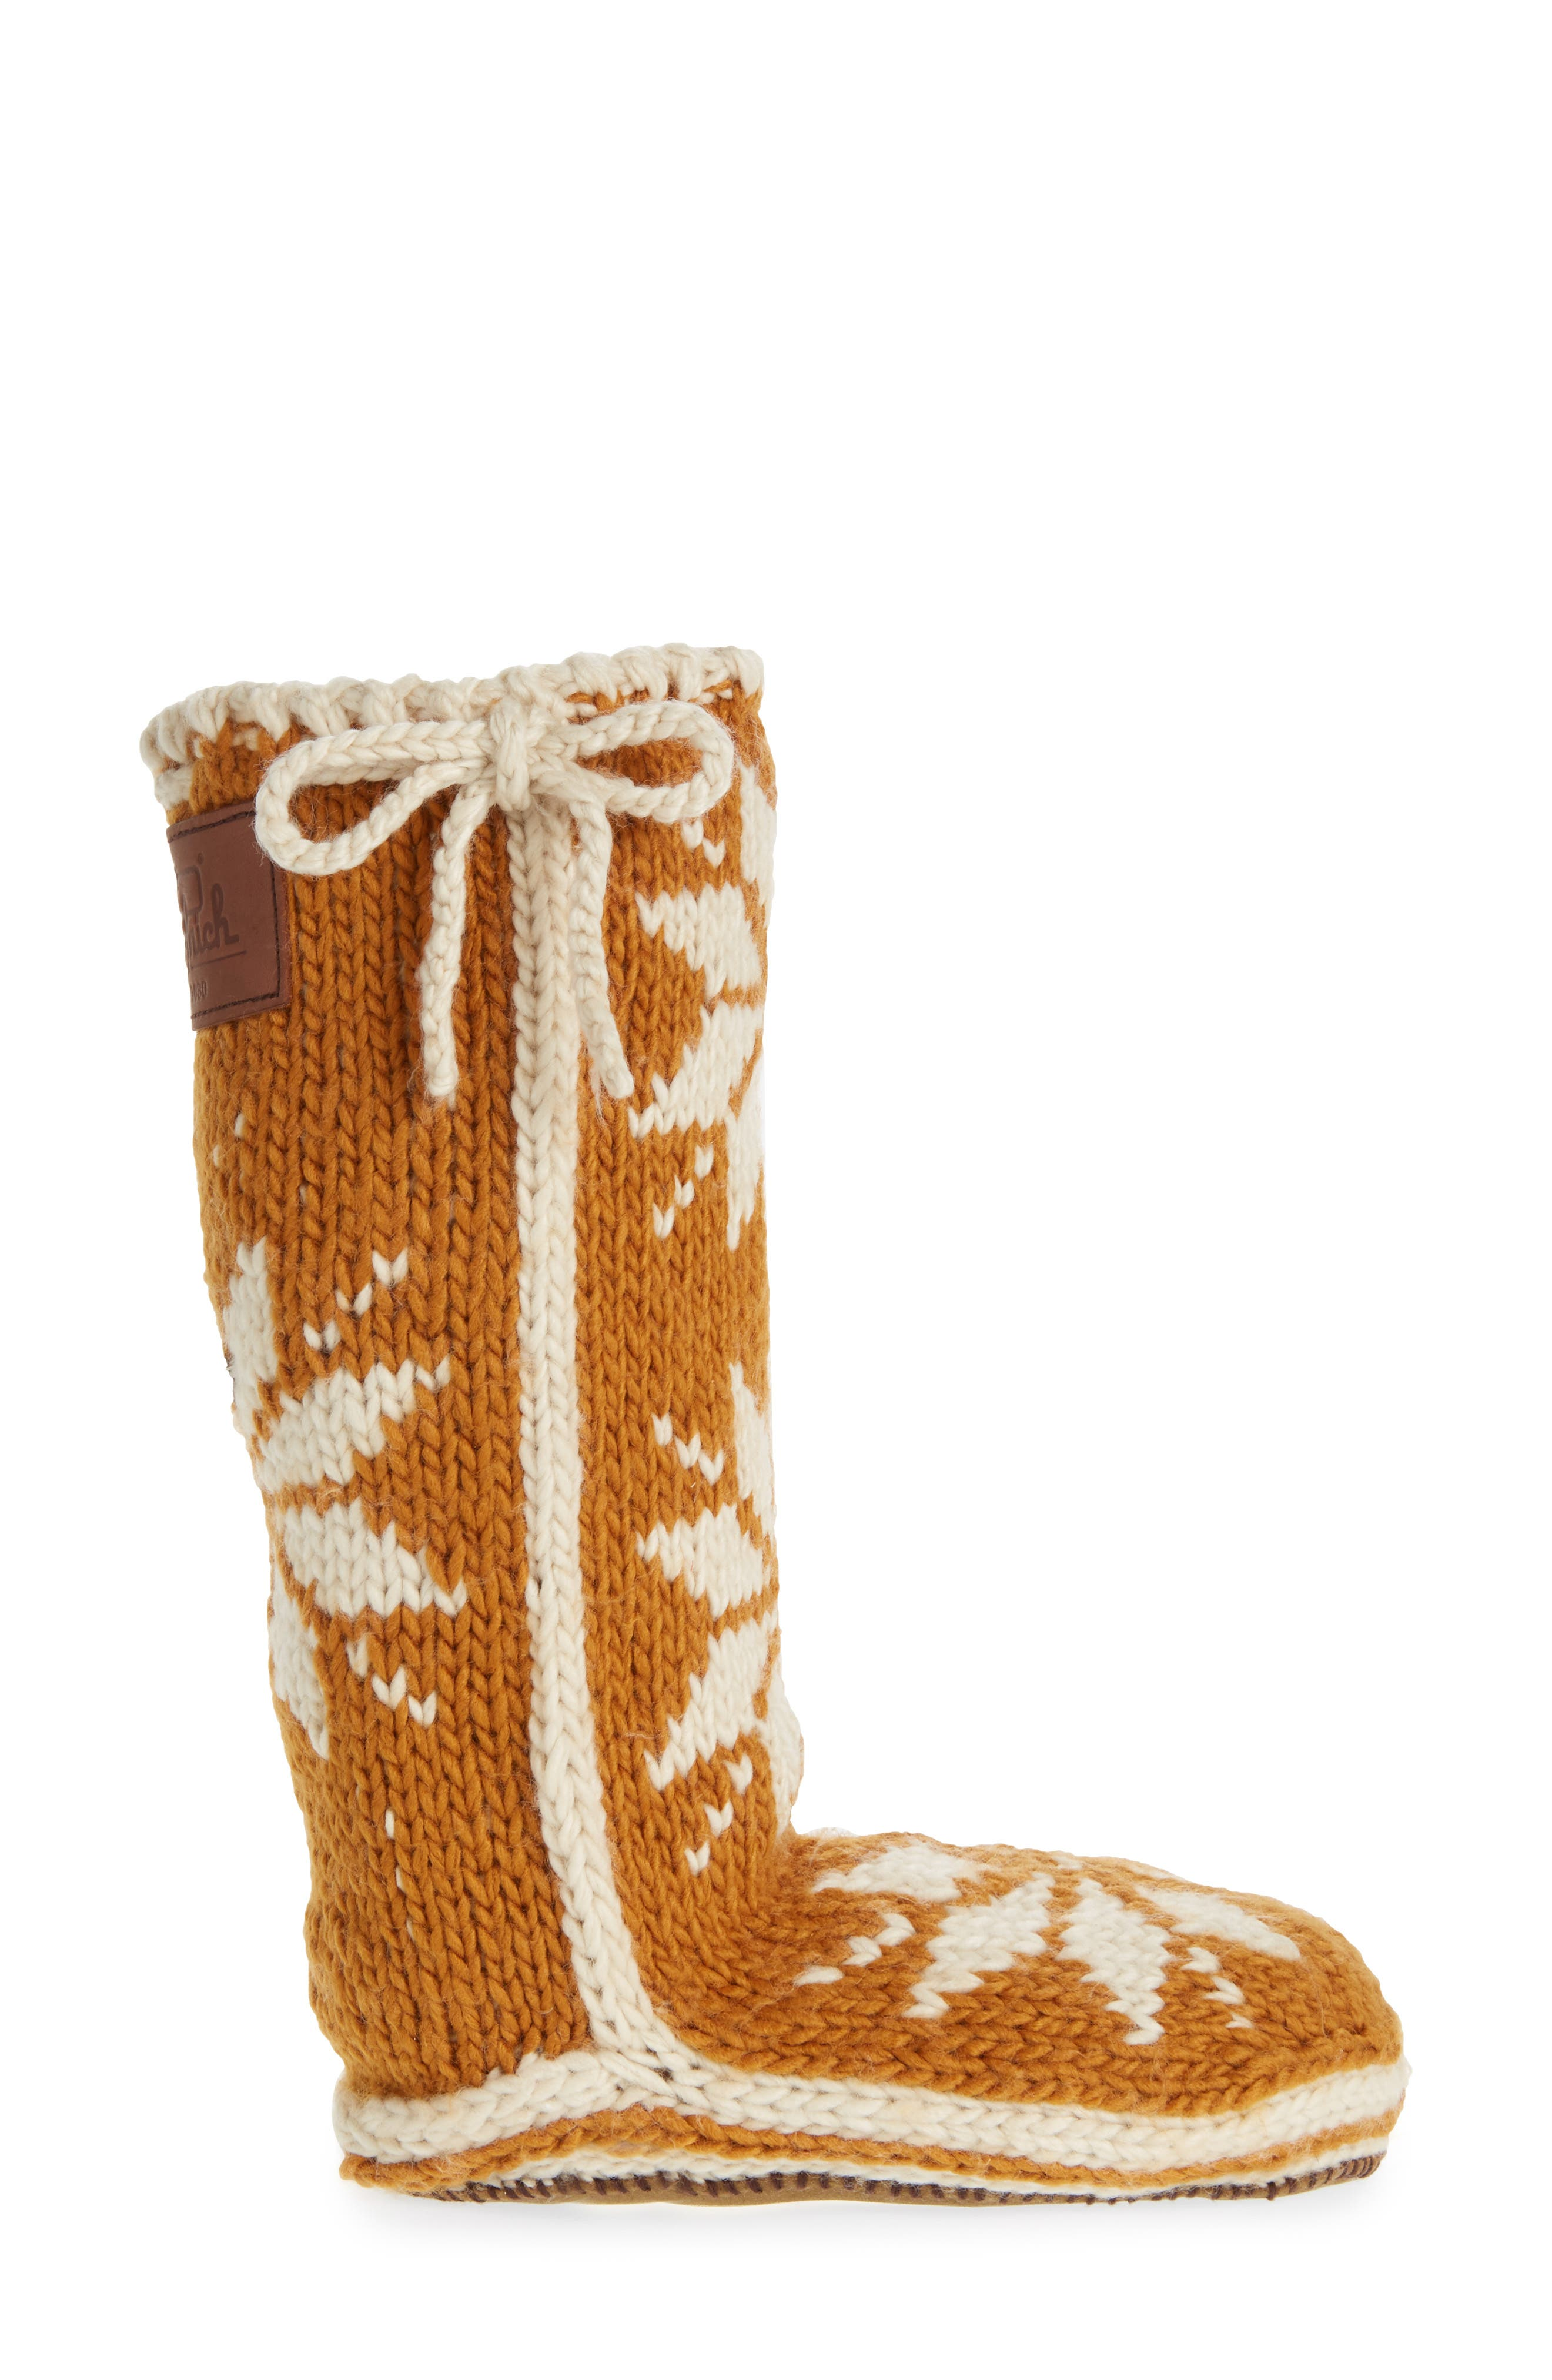 'Chalet' Socks,                             Alternate thumbnail 3, color,                             CATHAY SPICE FABRIC